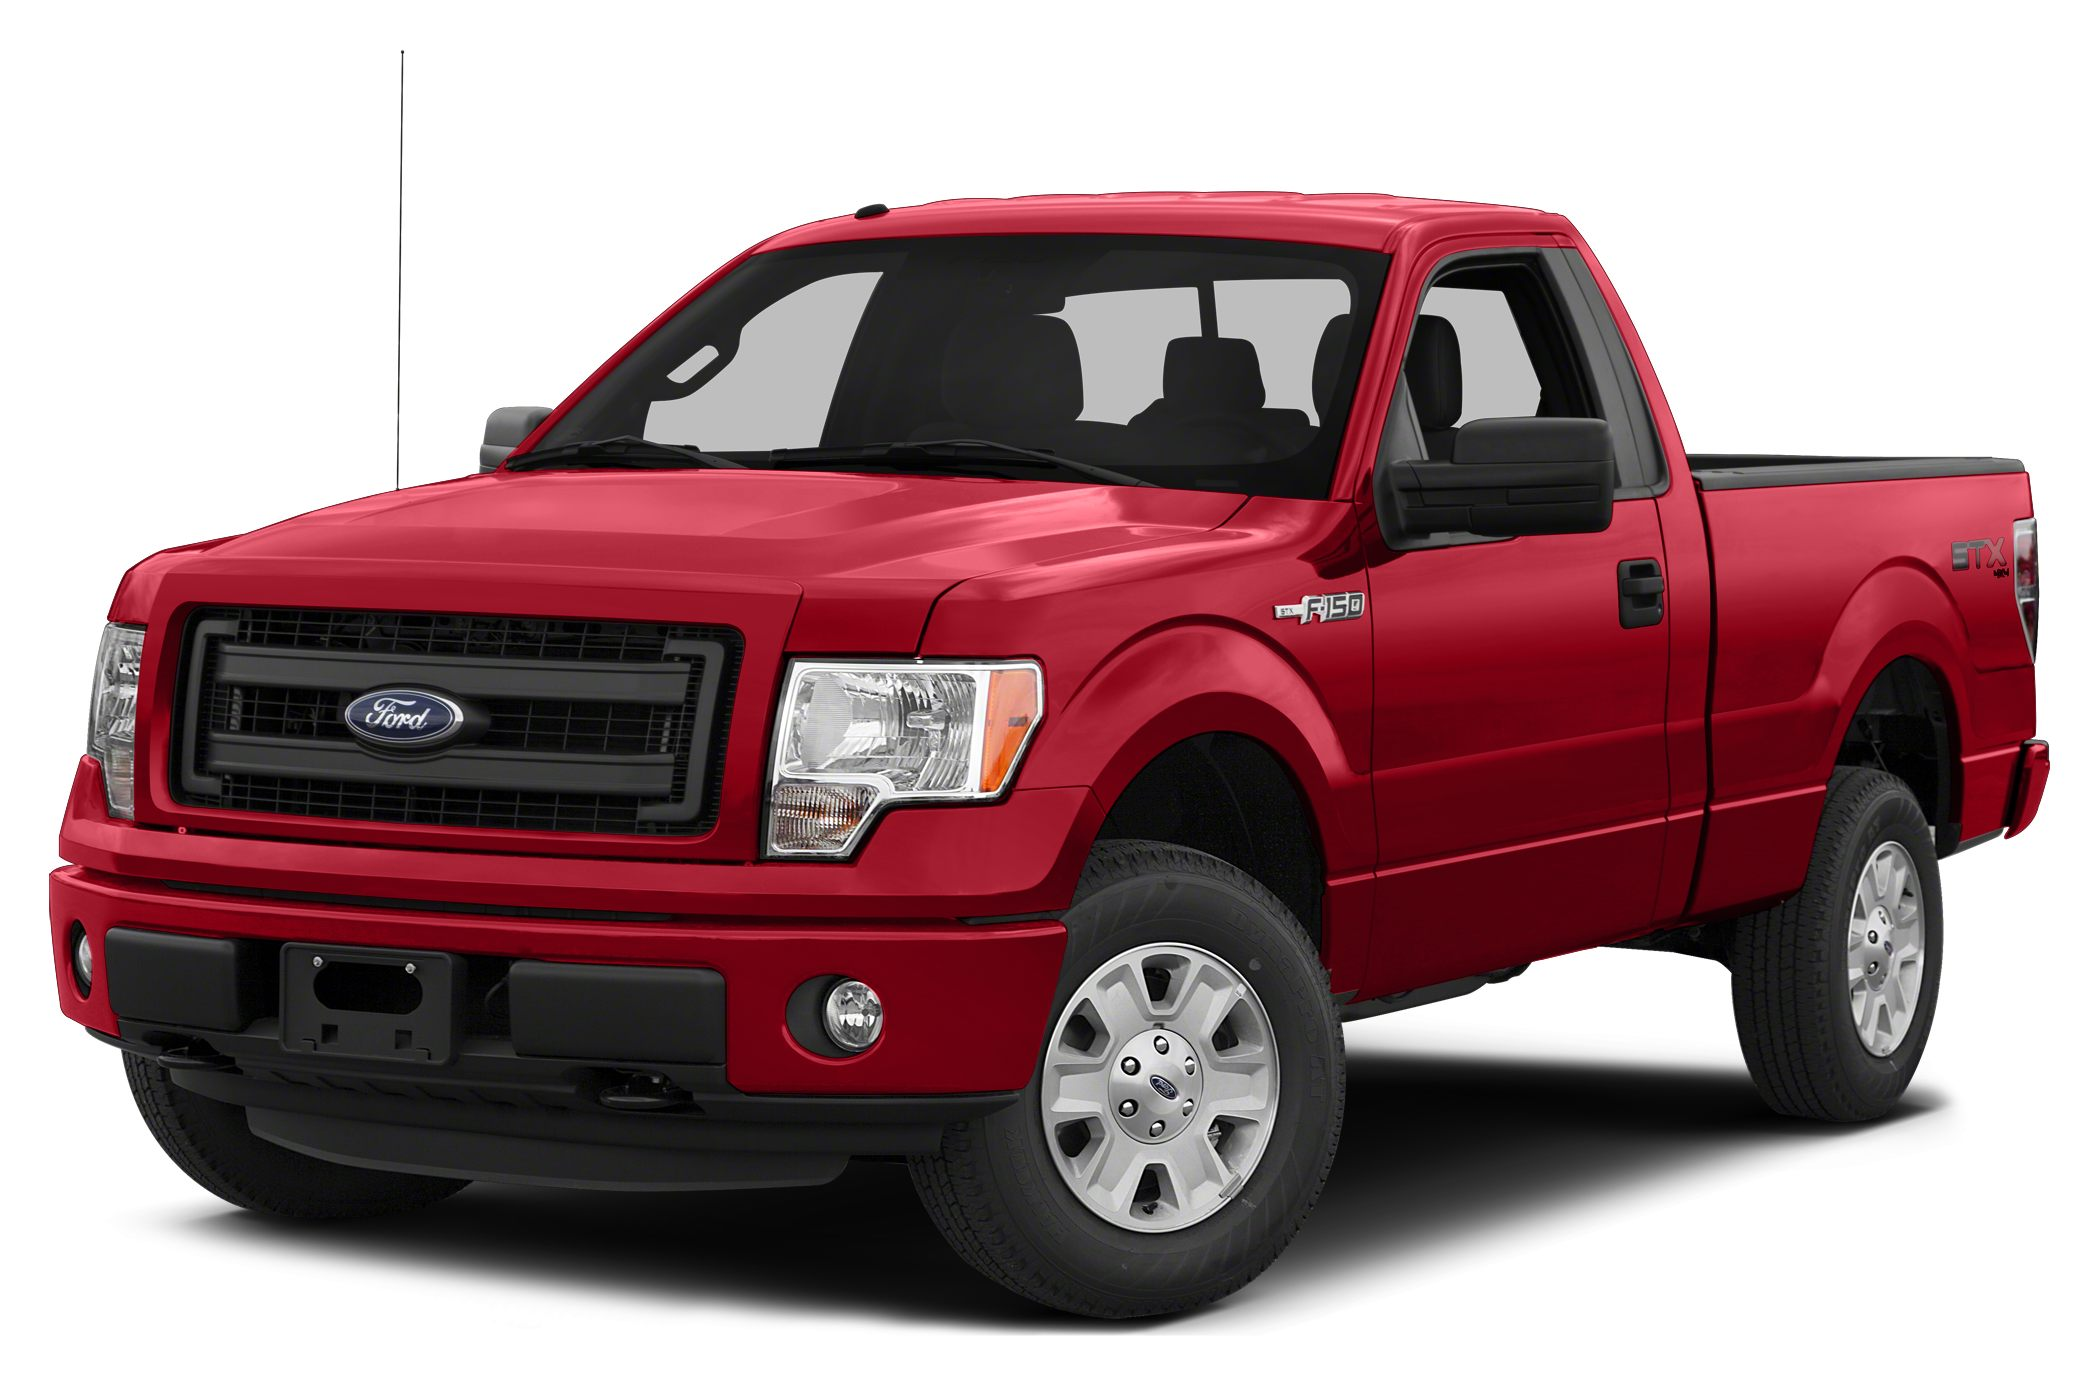 2014 Ford F150 XL Regular Cab Pickup for sale in Beech Island for $22,777 with 12,494 miles